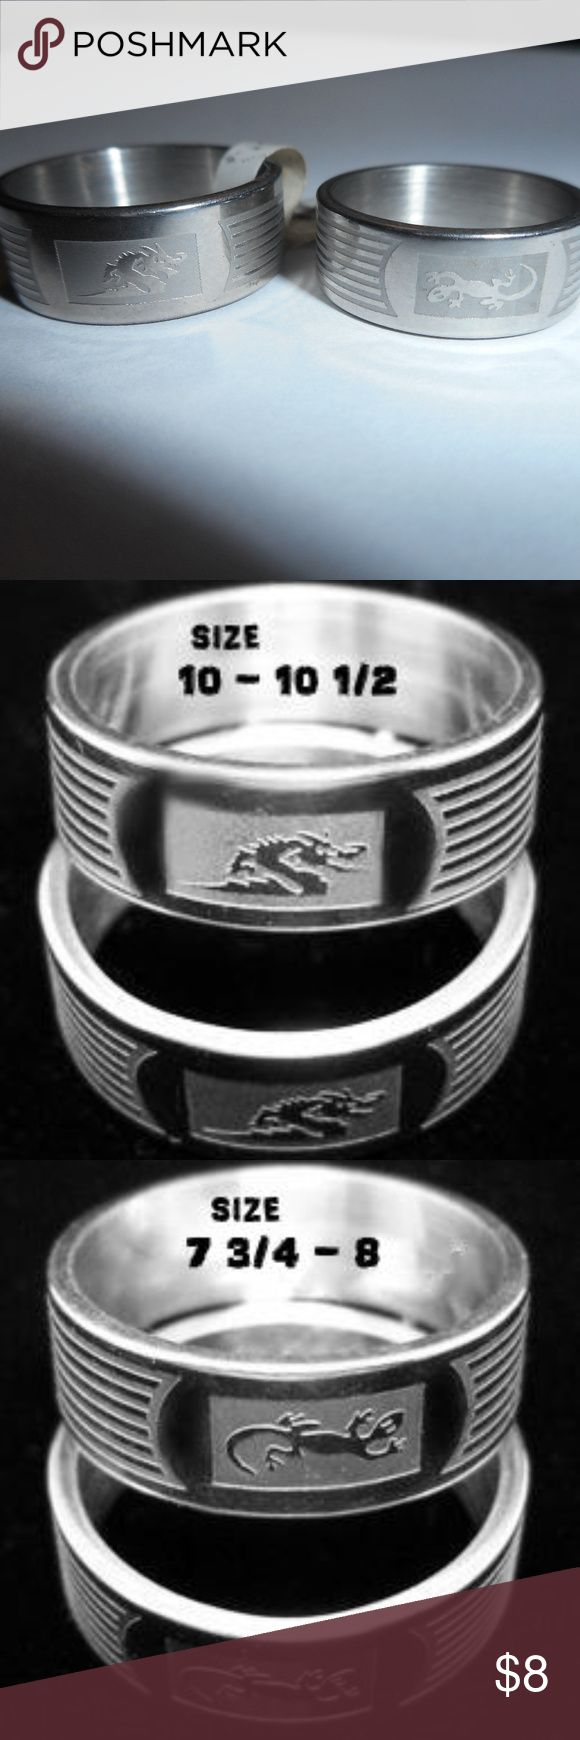 Men's Rings ... Stainless Steel Rings...Never worn Men's rings but Ladies can wear them if they are into dragons or lizards stainless steel rings  Lizard ring size 7 3/4 - 8 Dragon ring size 10 - 10 1/2 (this ring has a tag with a ?european? size 20)  the rings were never worn but were stored in a box in the barn for several years. the main picture is a picture of the exact rings for sale.  The rings with the sizes posted on them are stock photos, the rest of the images are the exact rings…